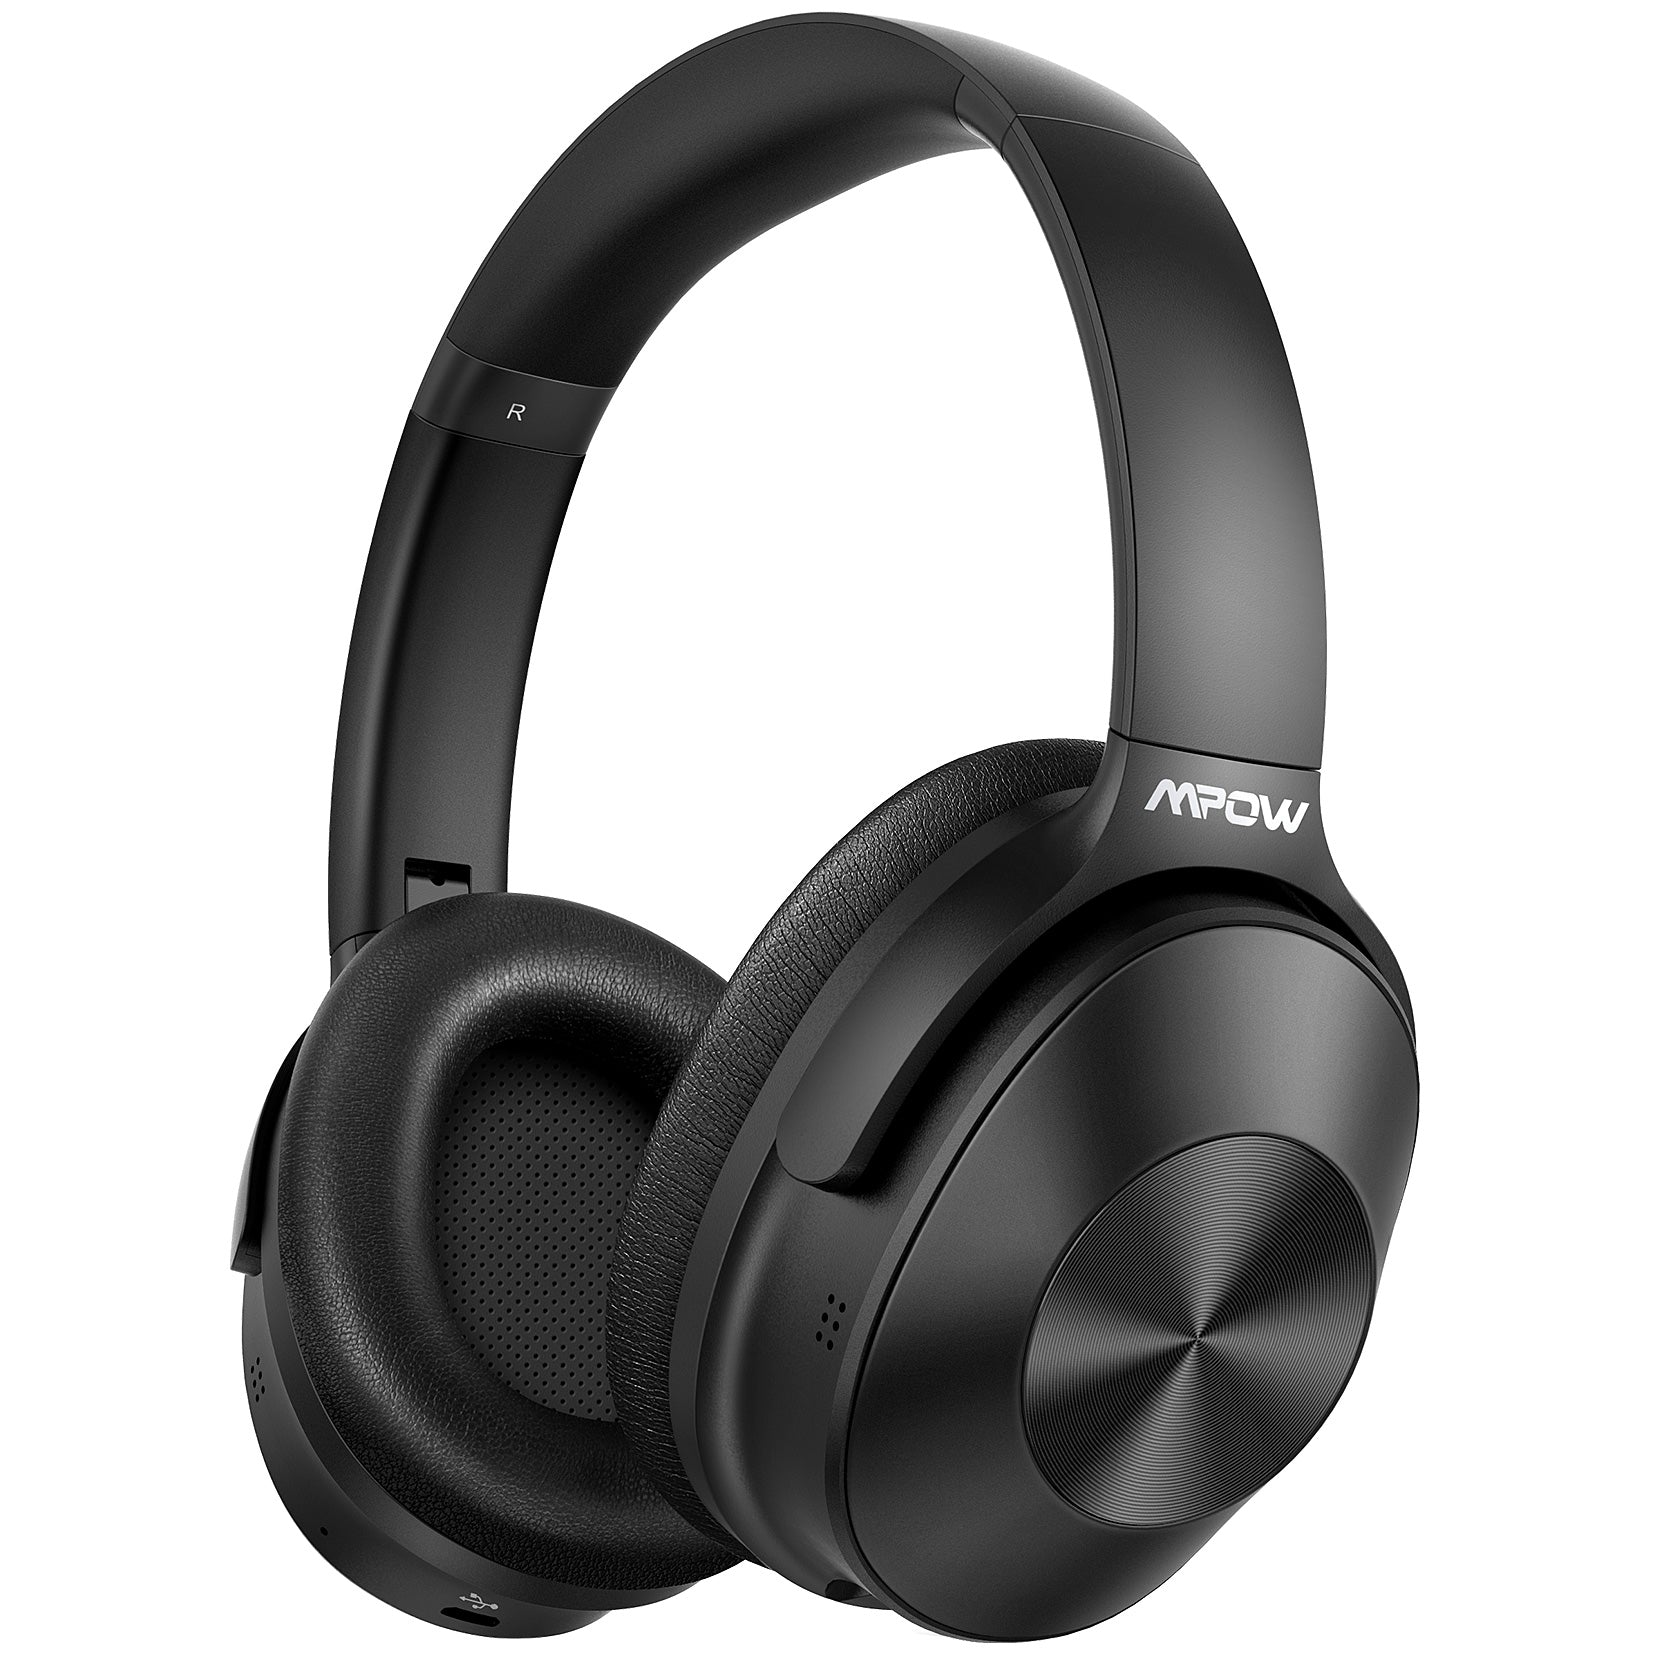 Mpow H12 Noise Cancelling Headphones (Black)